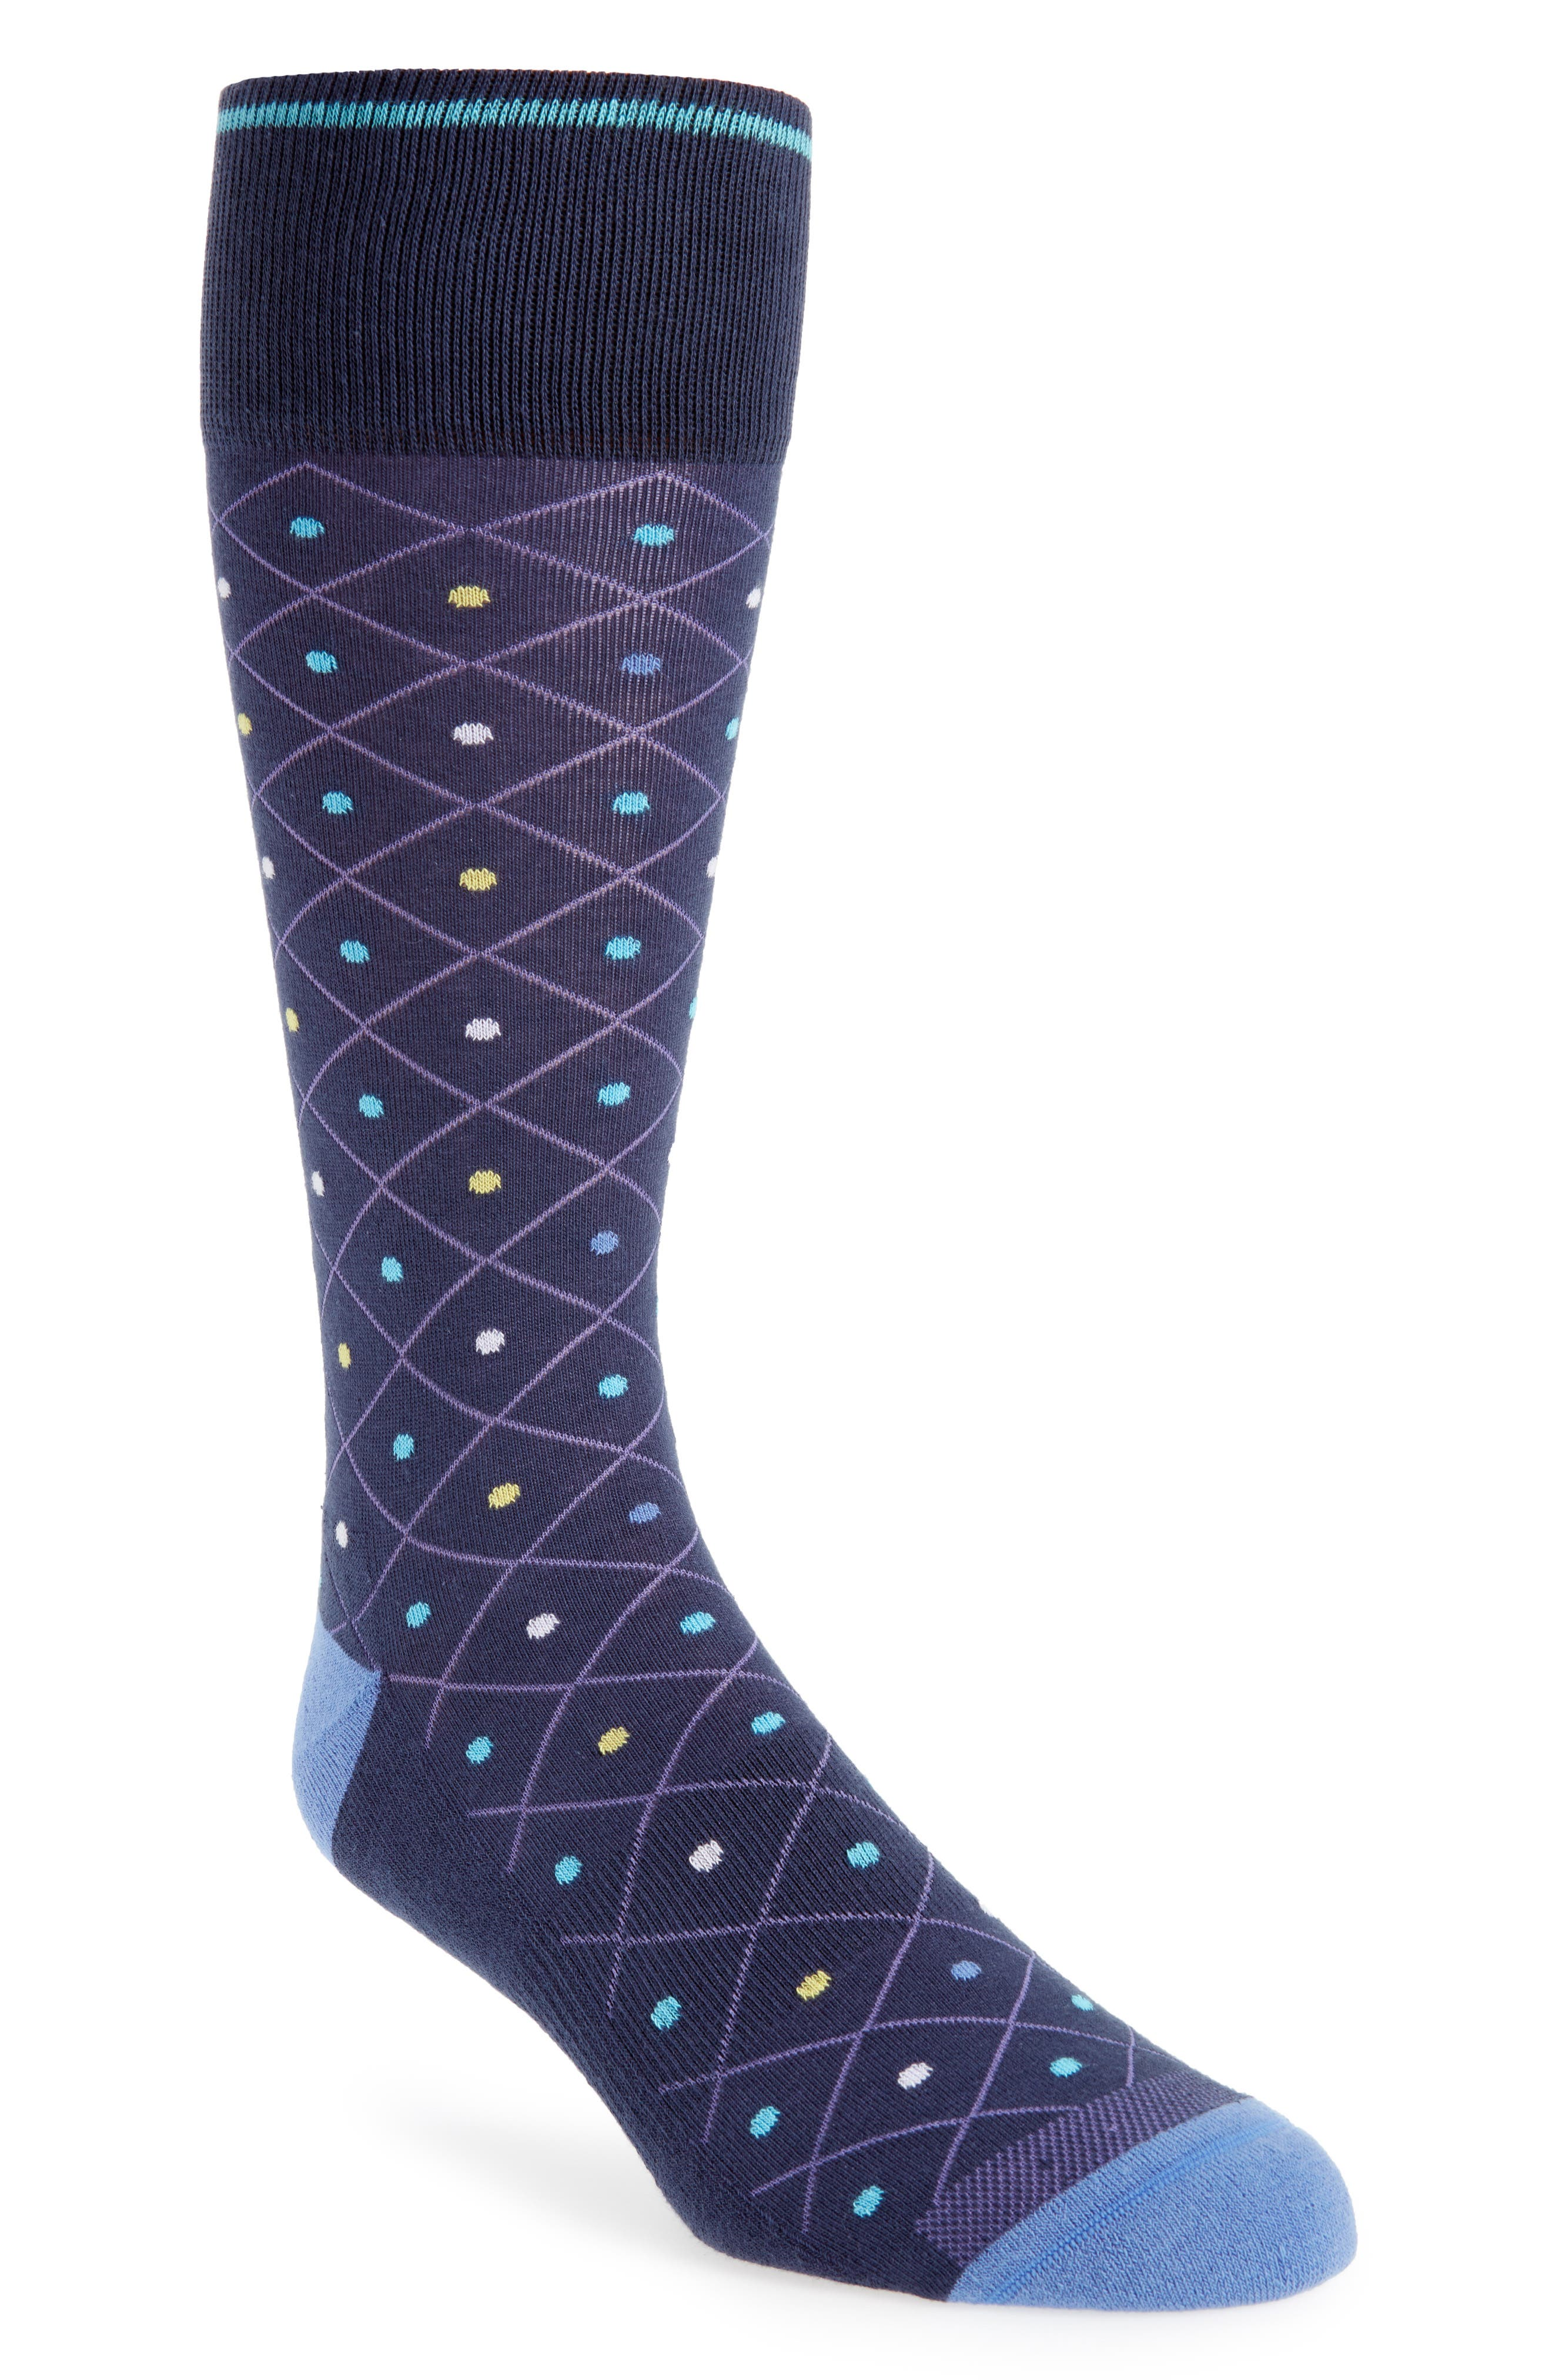 Pointed Grid Socks,                         Main,                         color, Navy/ Yellow